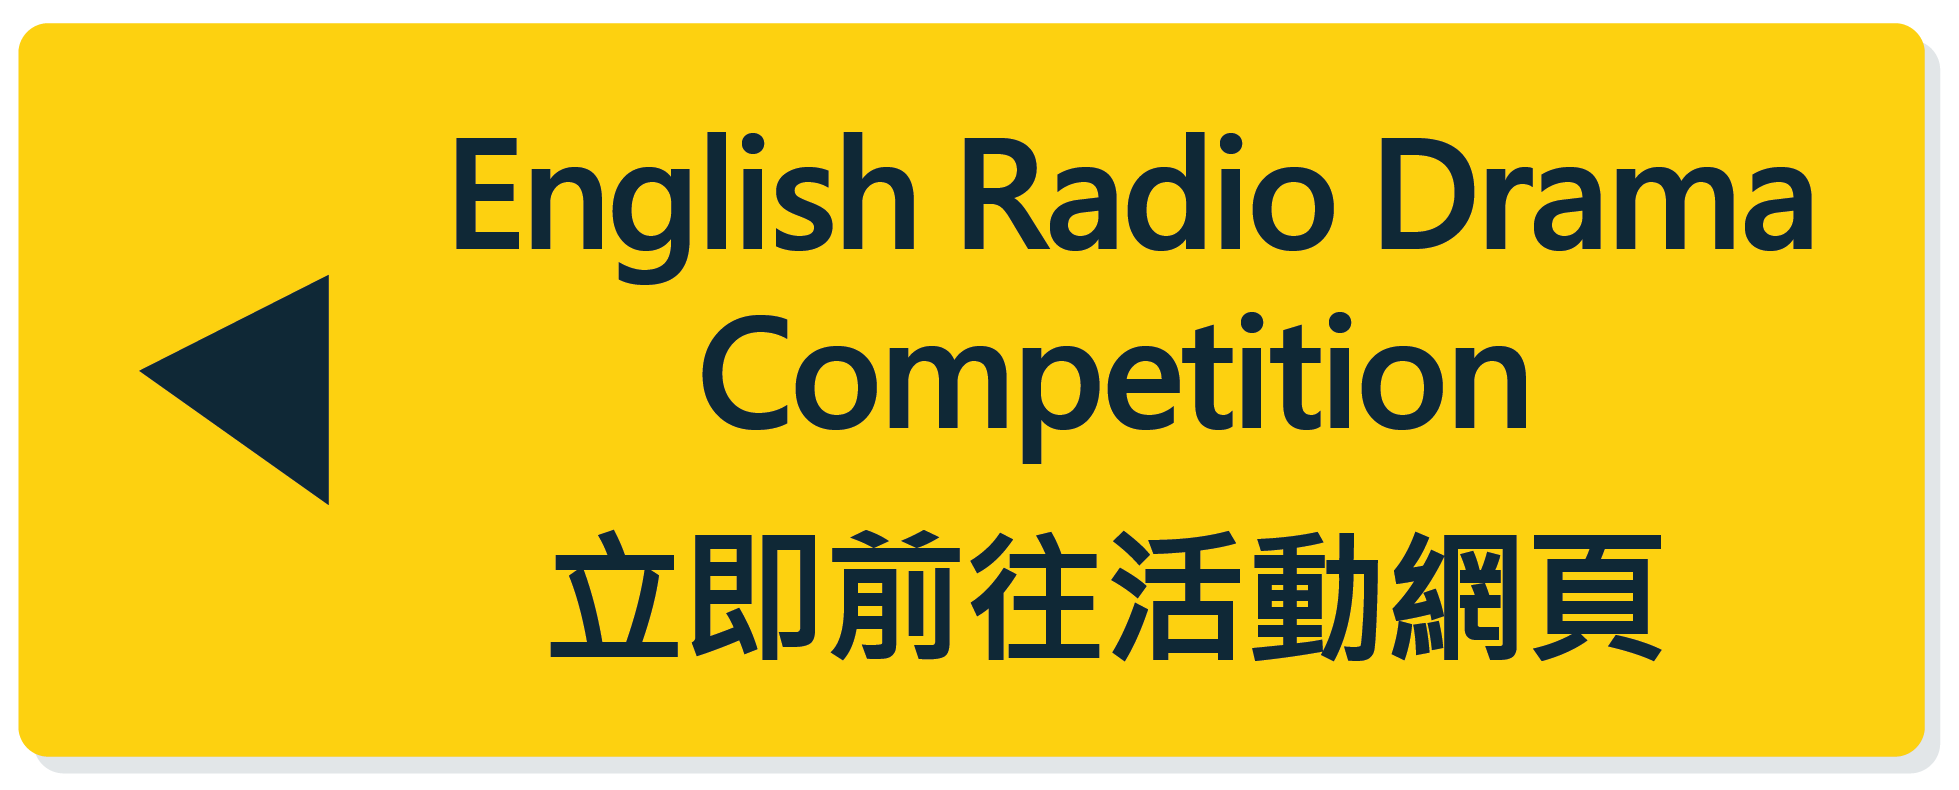 To Competition Website